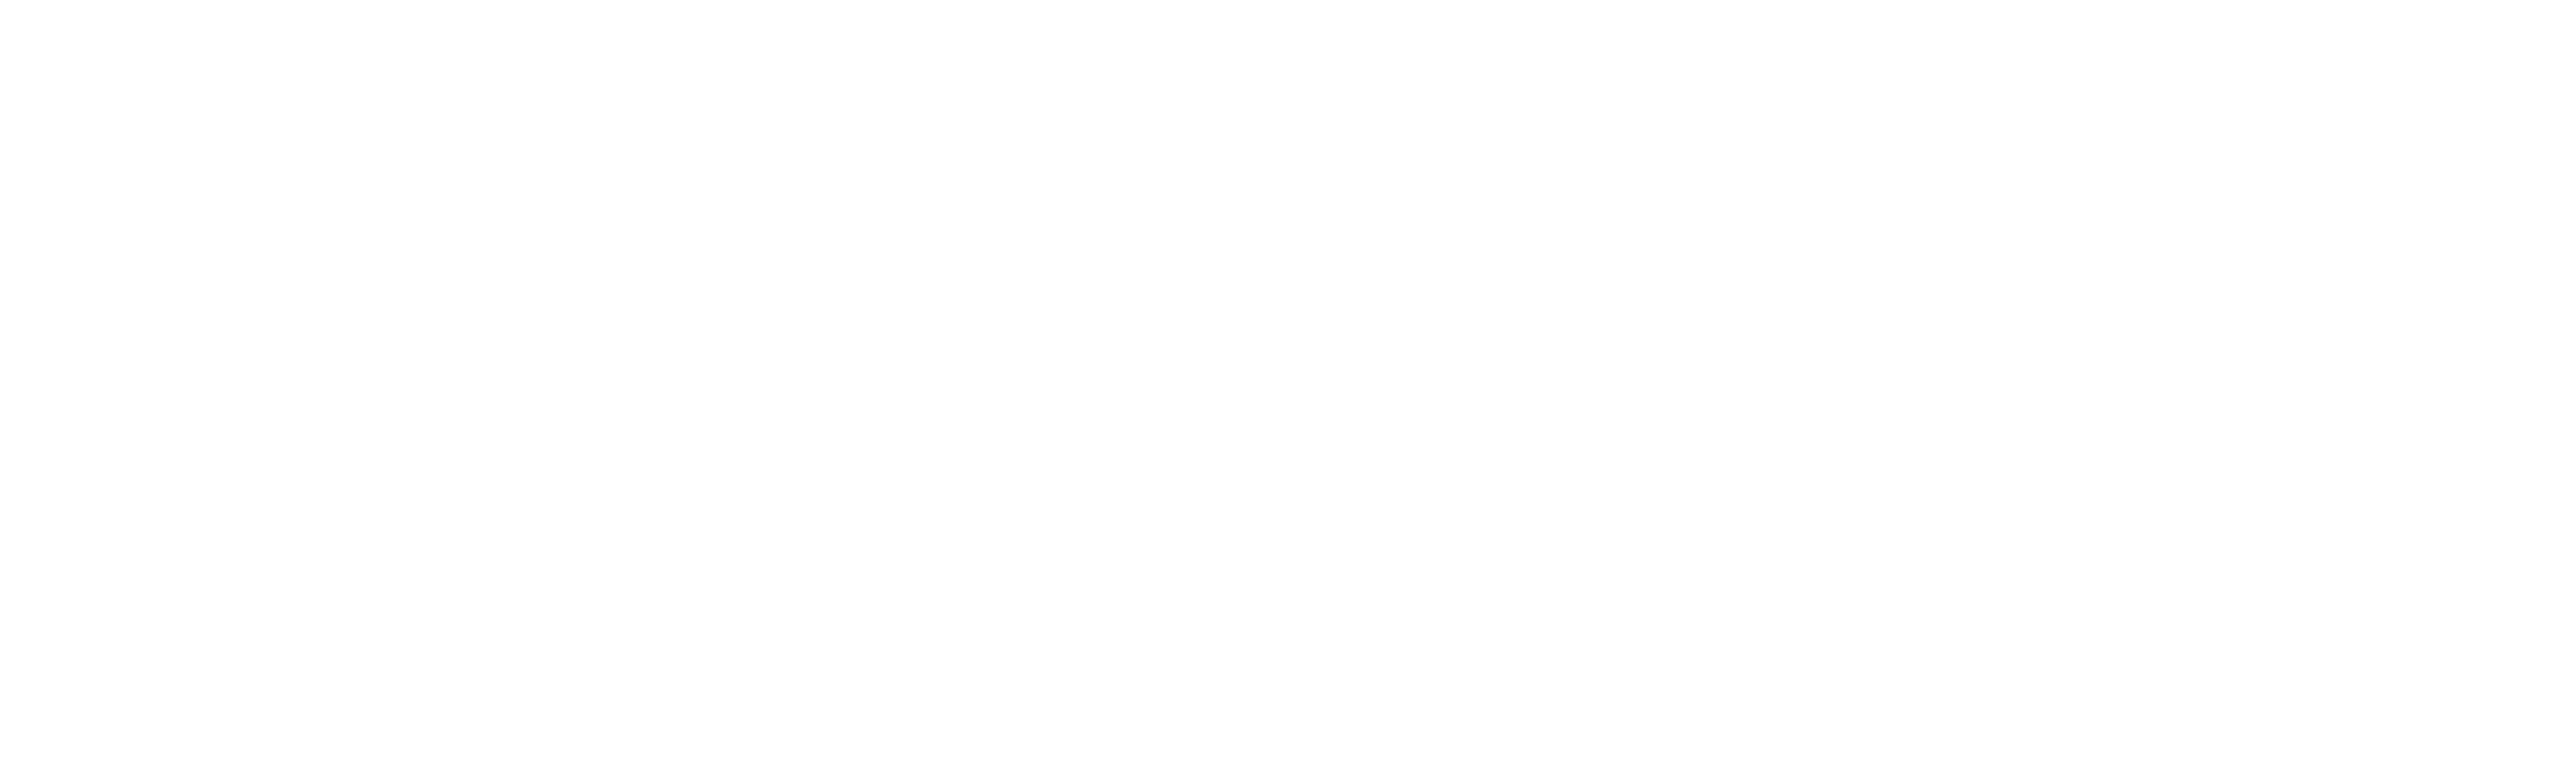 Setauket Floral Design - Flower Delivery in East Setauket, NY